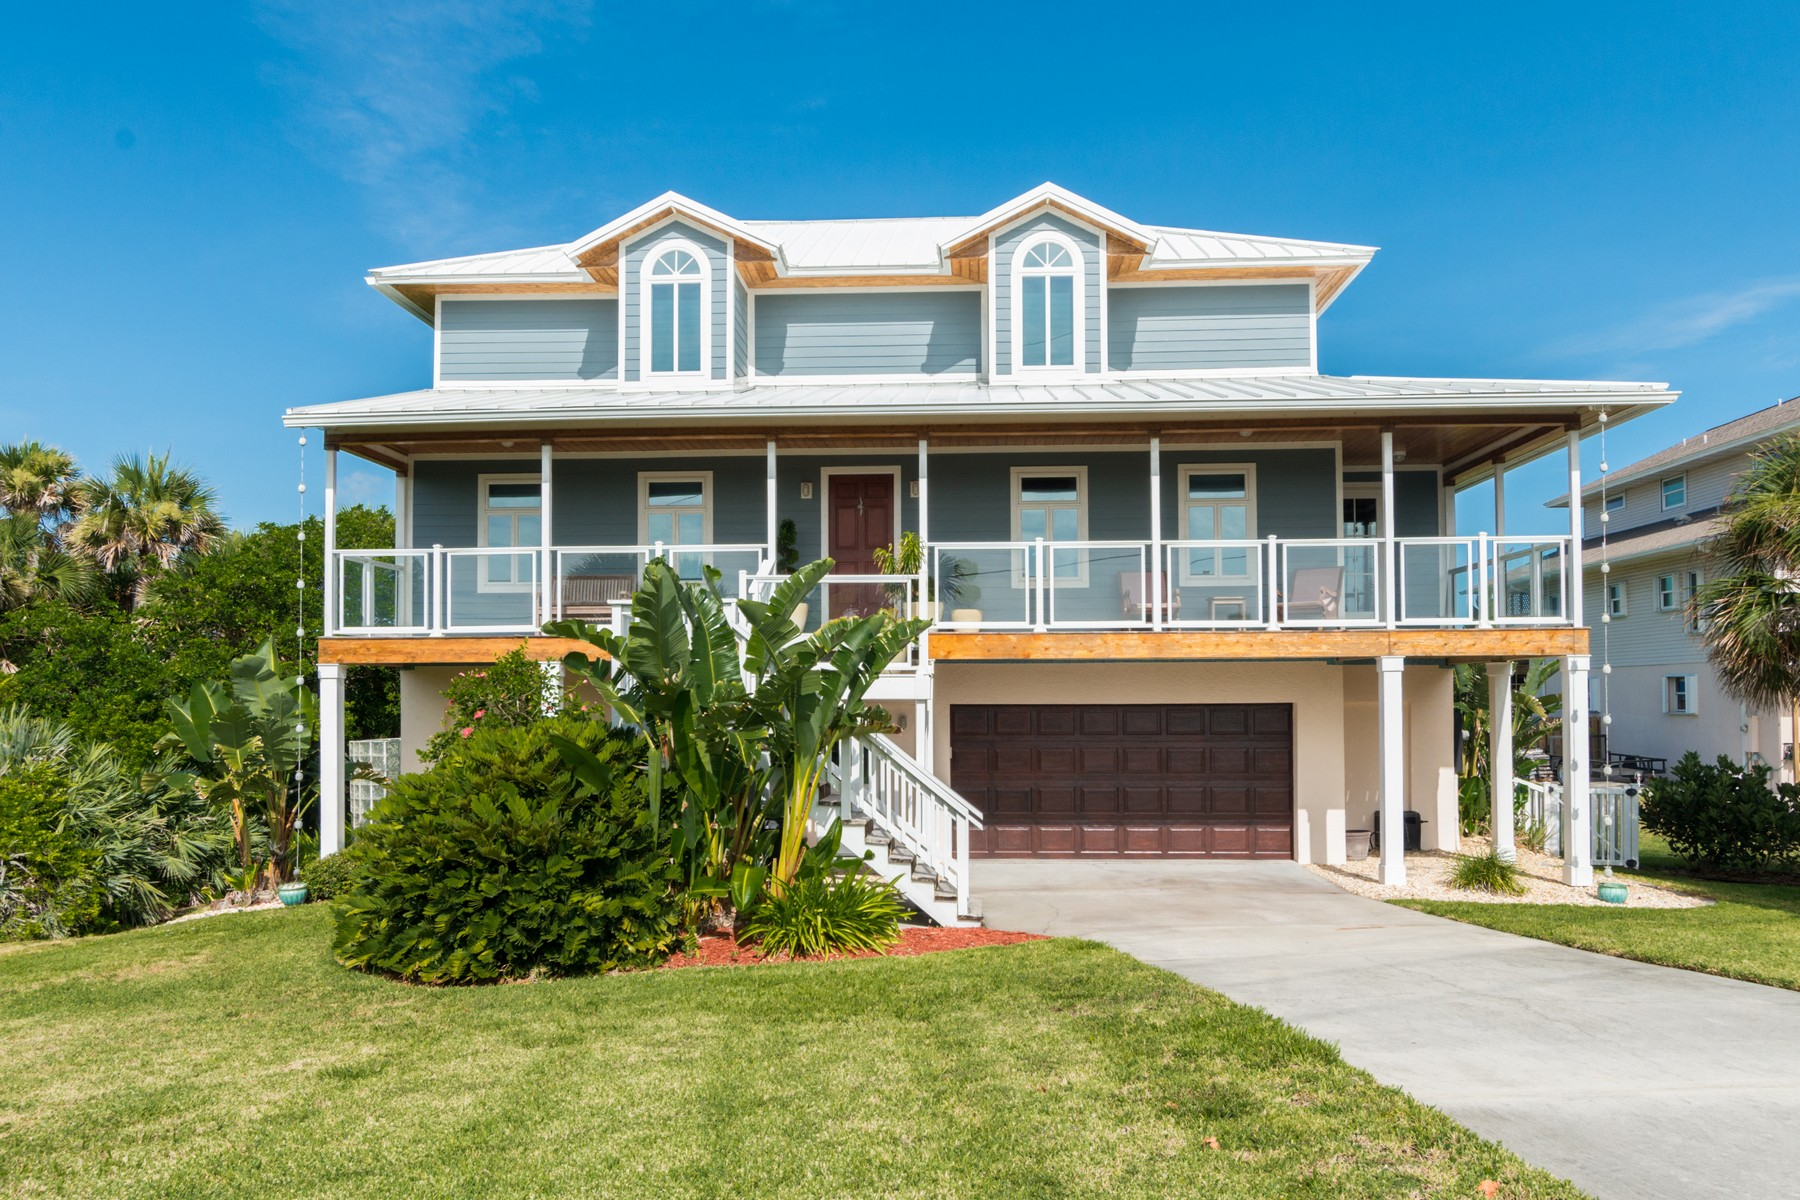 Maison unifamiliale pour l Vente à Exquisite 3 Story Riverfront Home 8360 Highway A1A Melbourne Beach, Florida, 32951 États-Unis